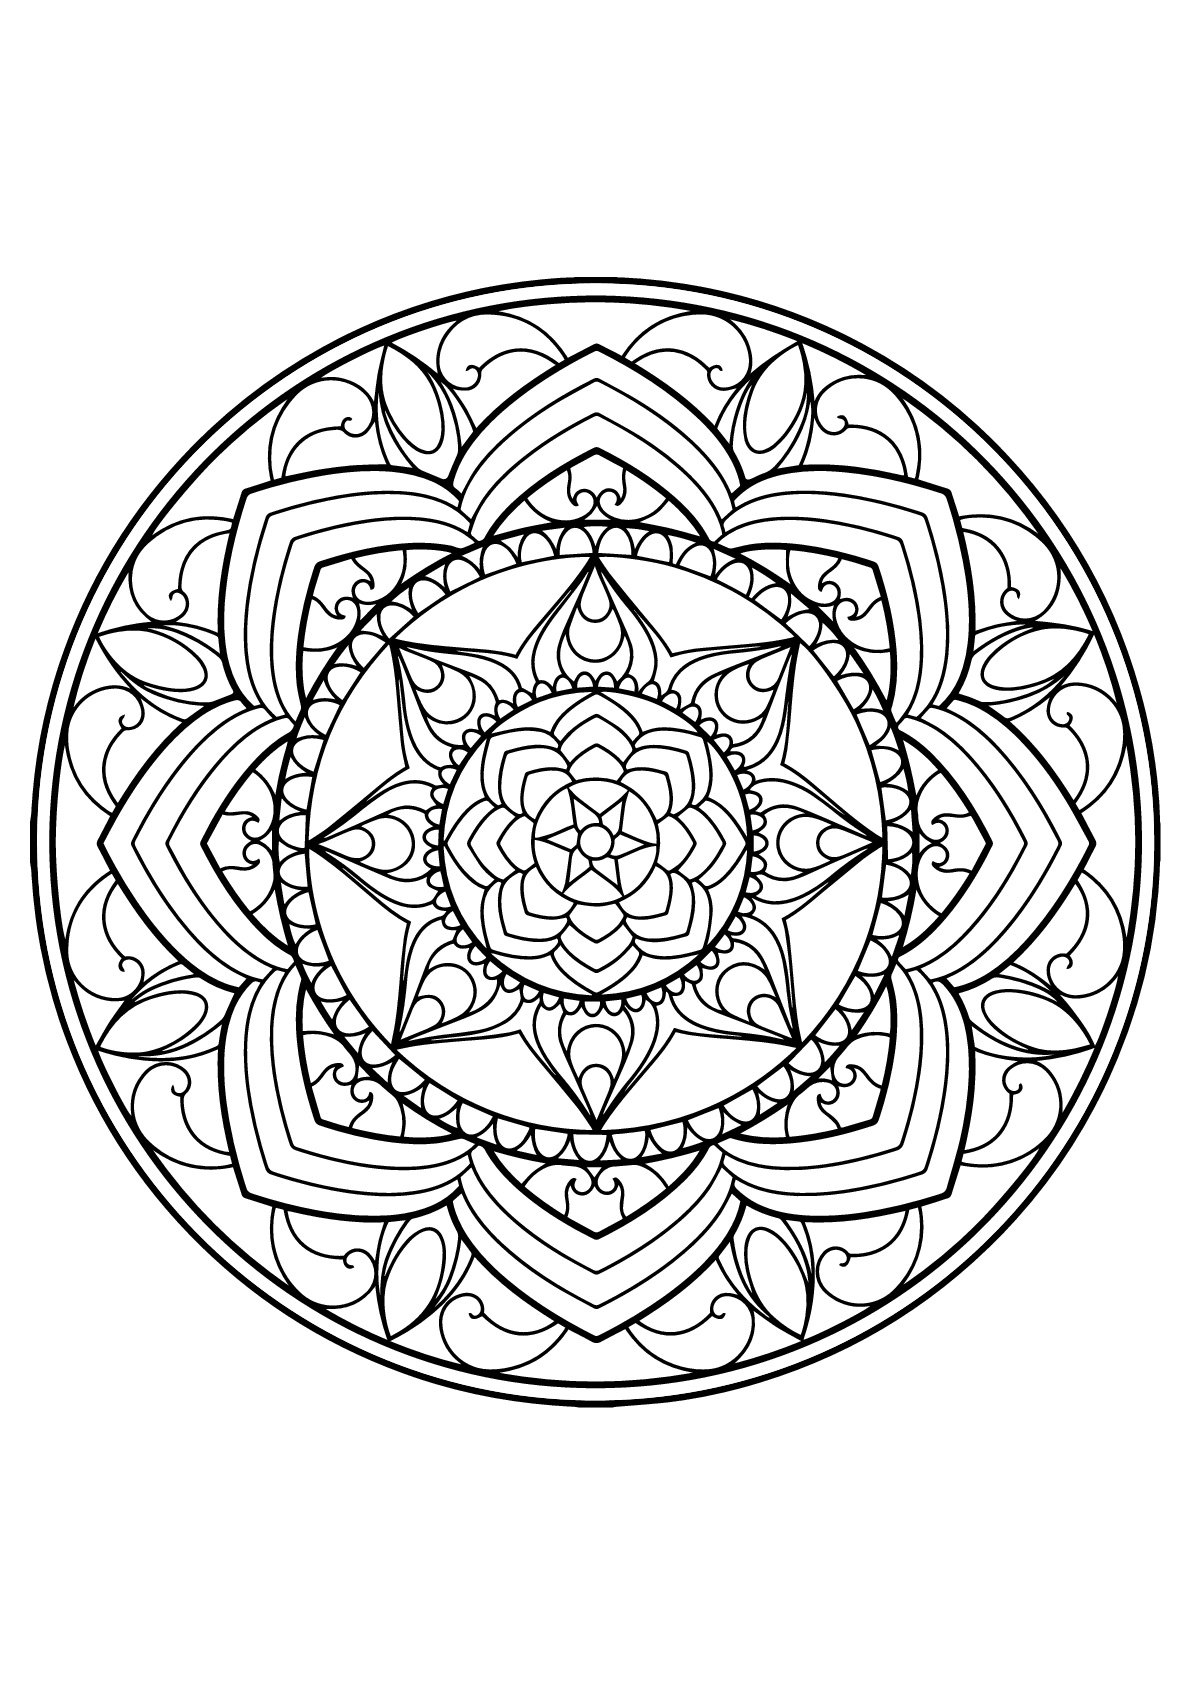 mandala from free coloring books for adults 13 m alas adult coloring pages. Black Bedroom Furniture Sets. Home Design Ideas